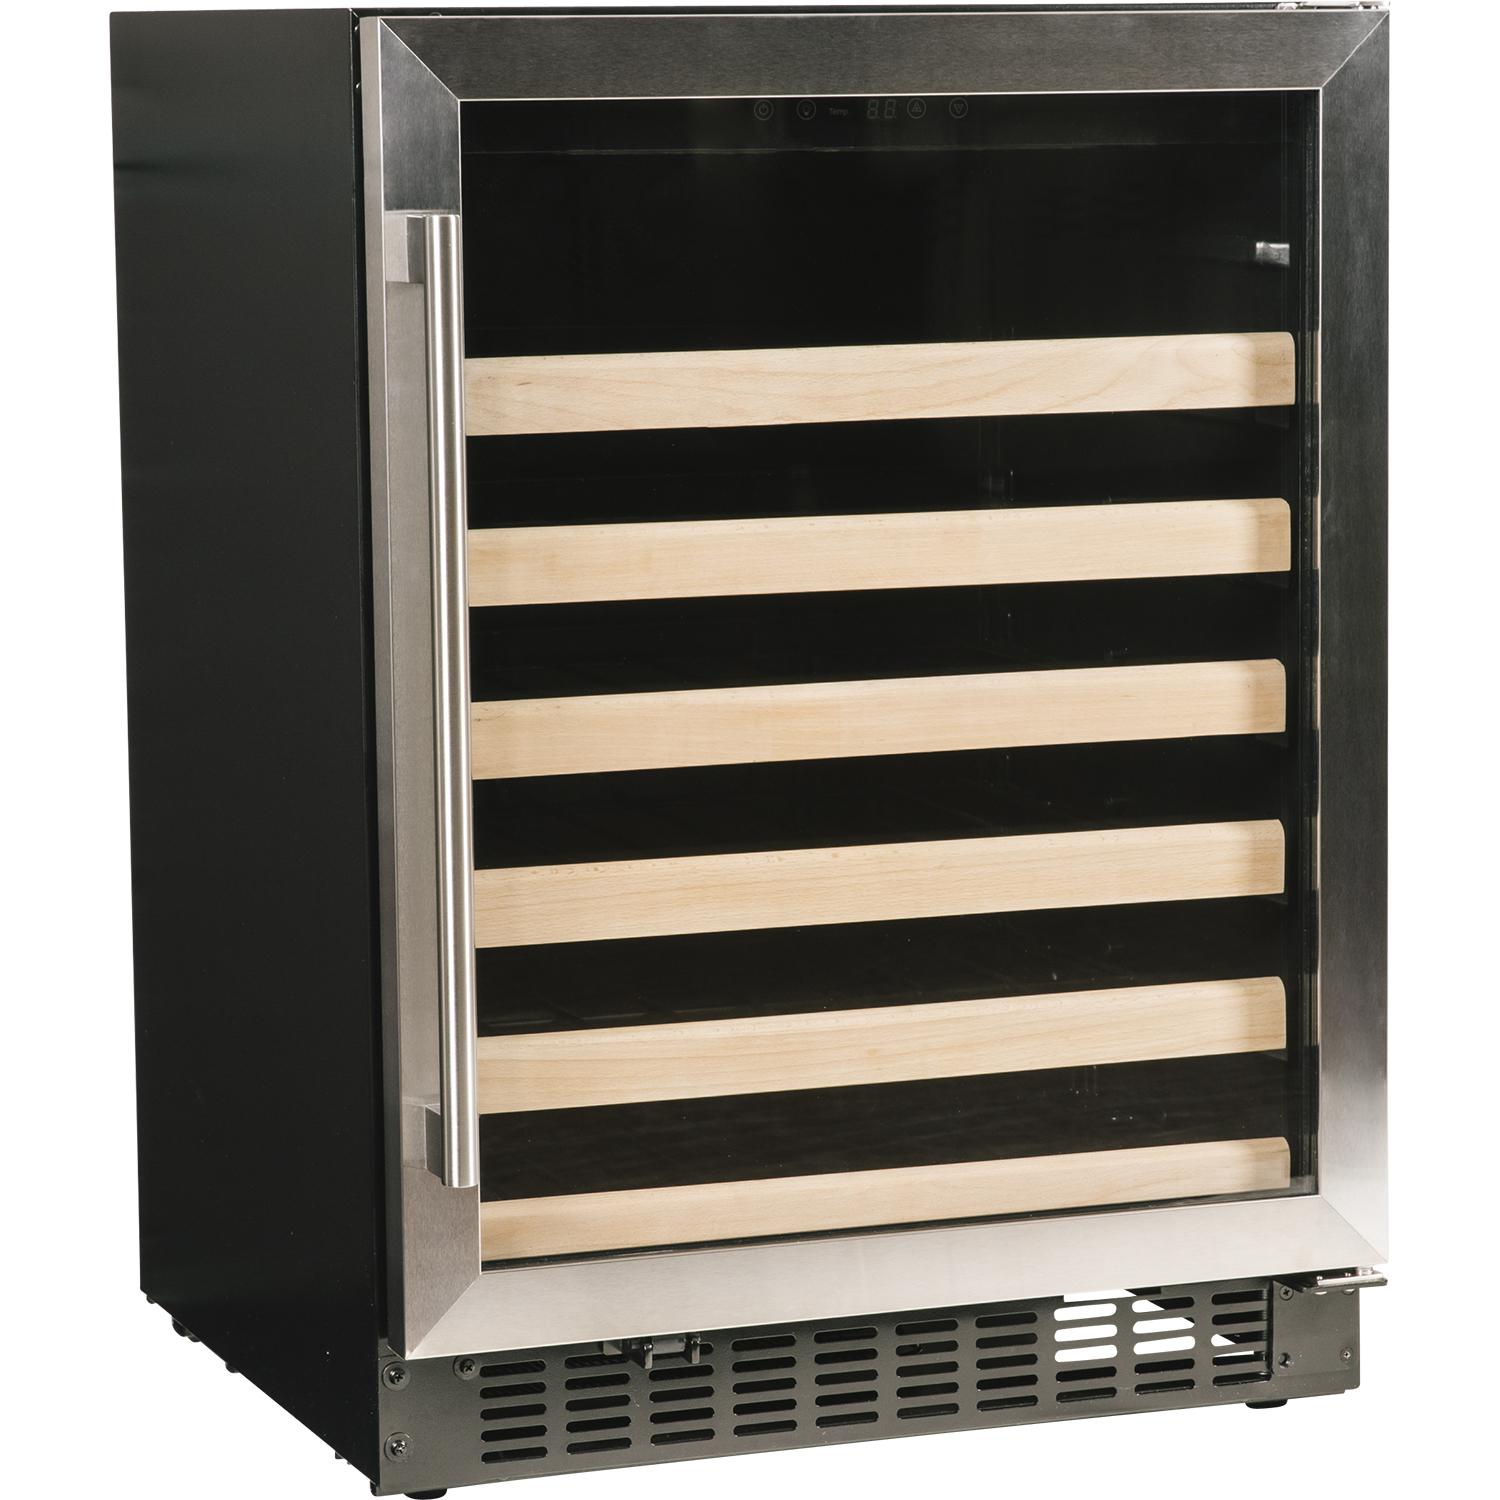 """Azure 24"""" 48 Bottle Wine Cooler - Stainless Steel - A124wc-s"""